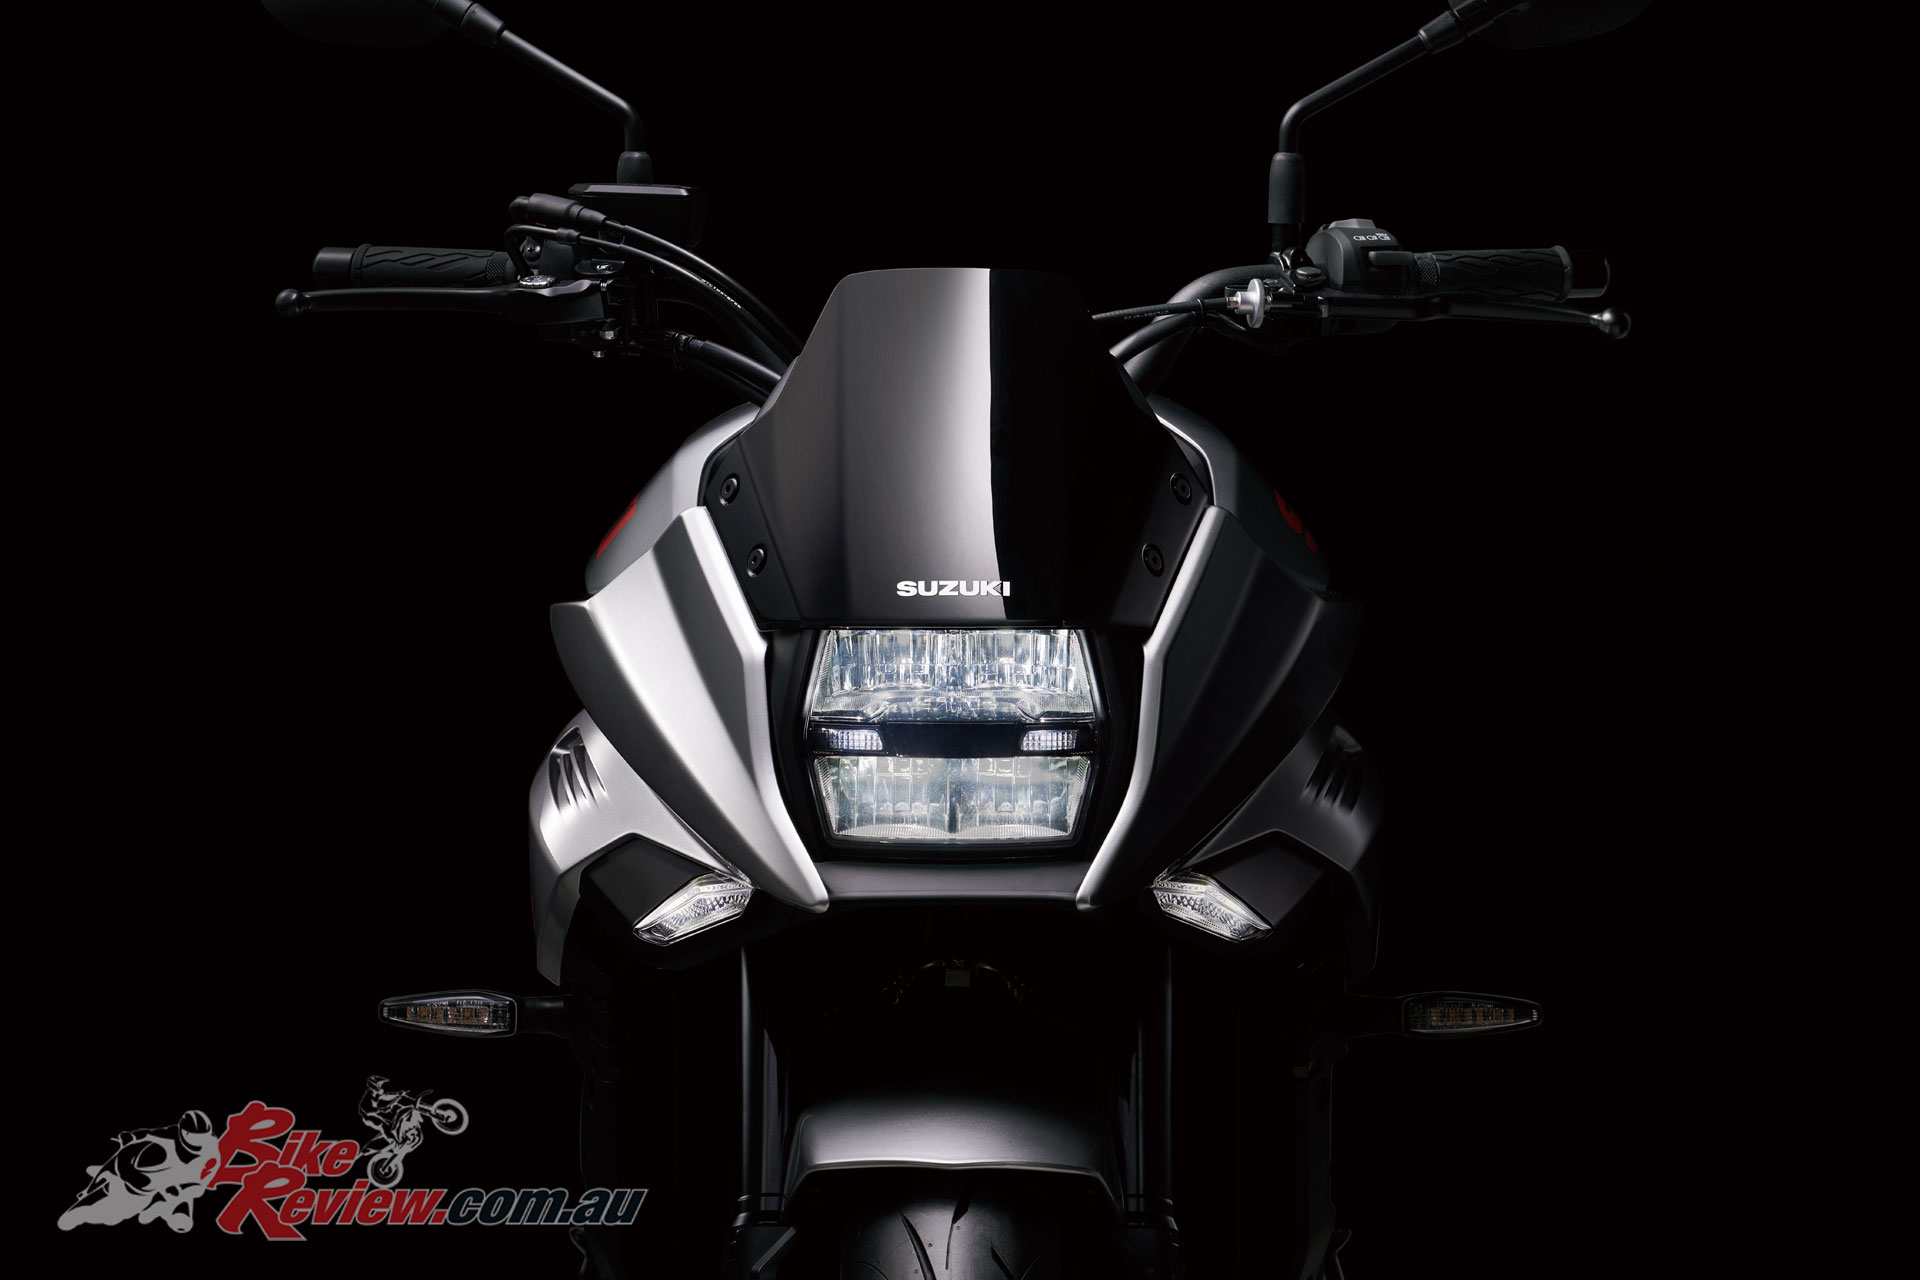 No pop up headlight from the later 750 Katana but the front does look futuristic yet familiar.